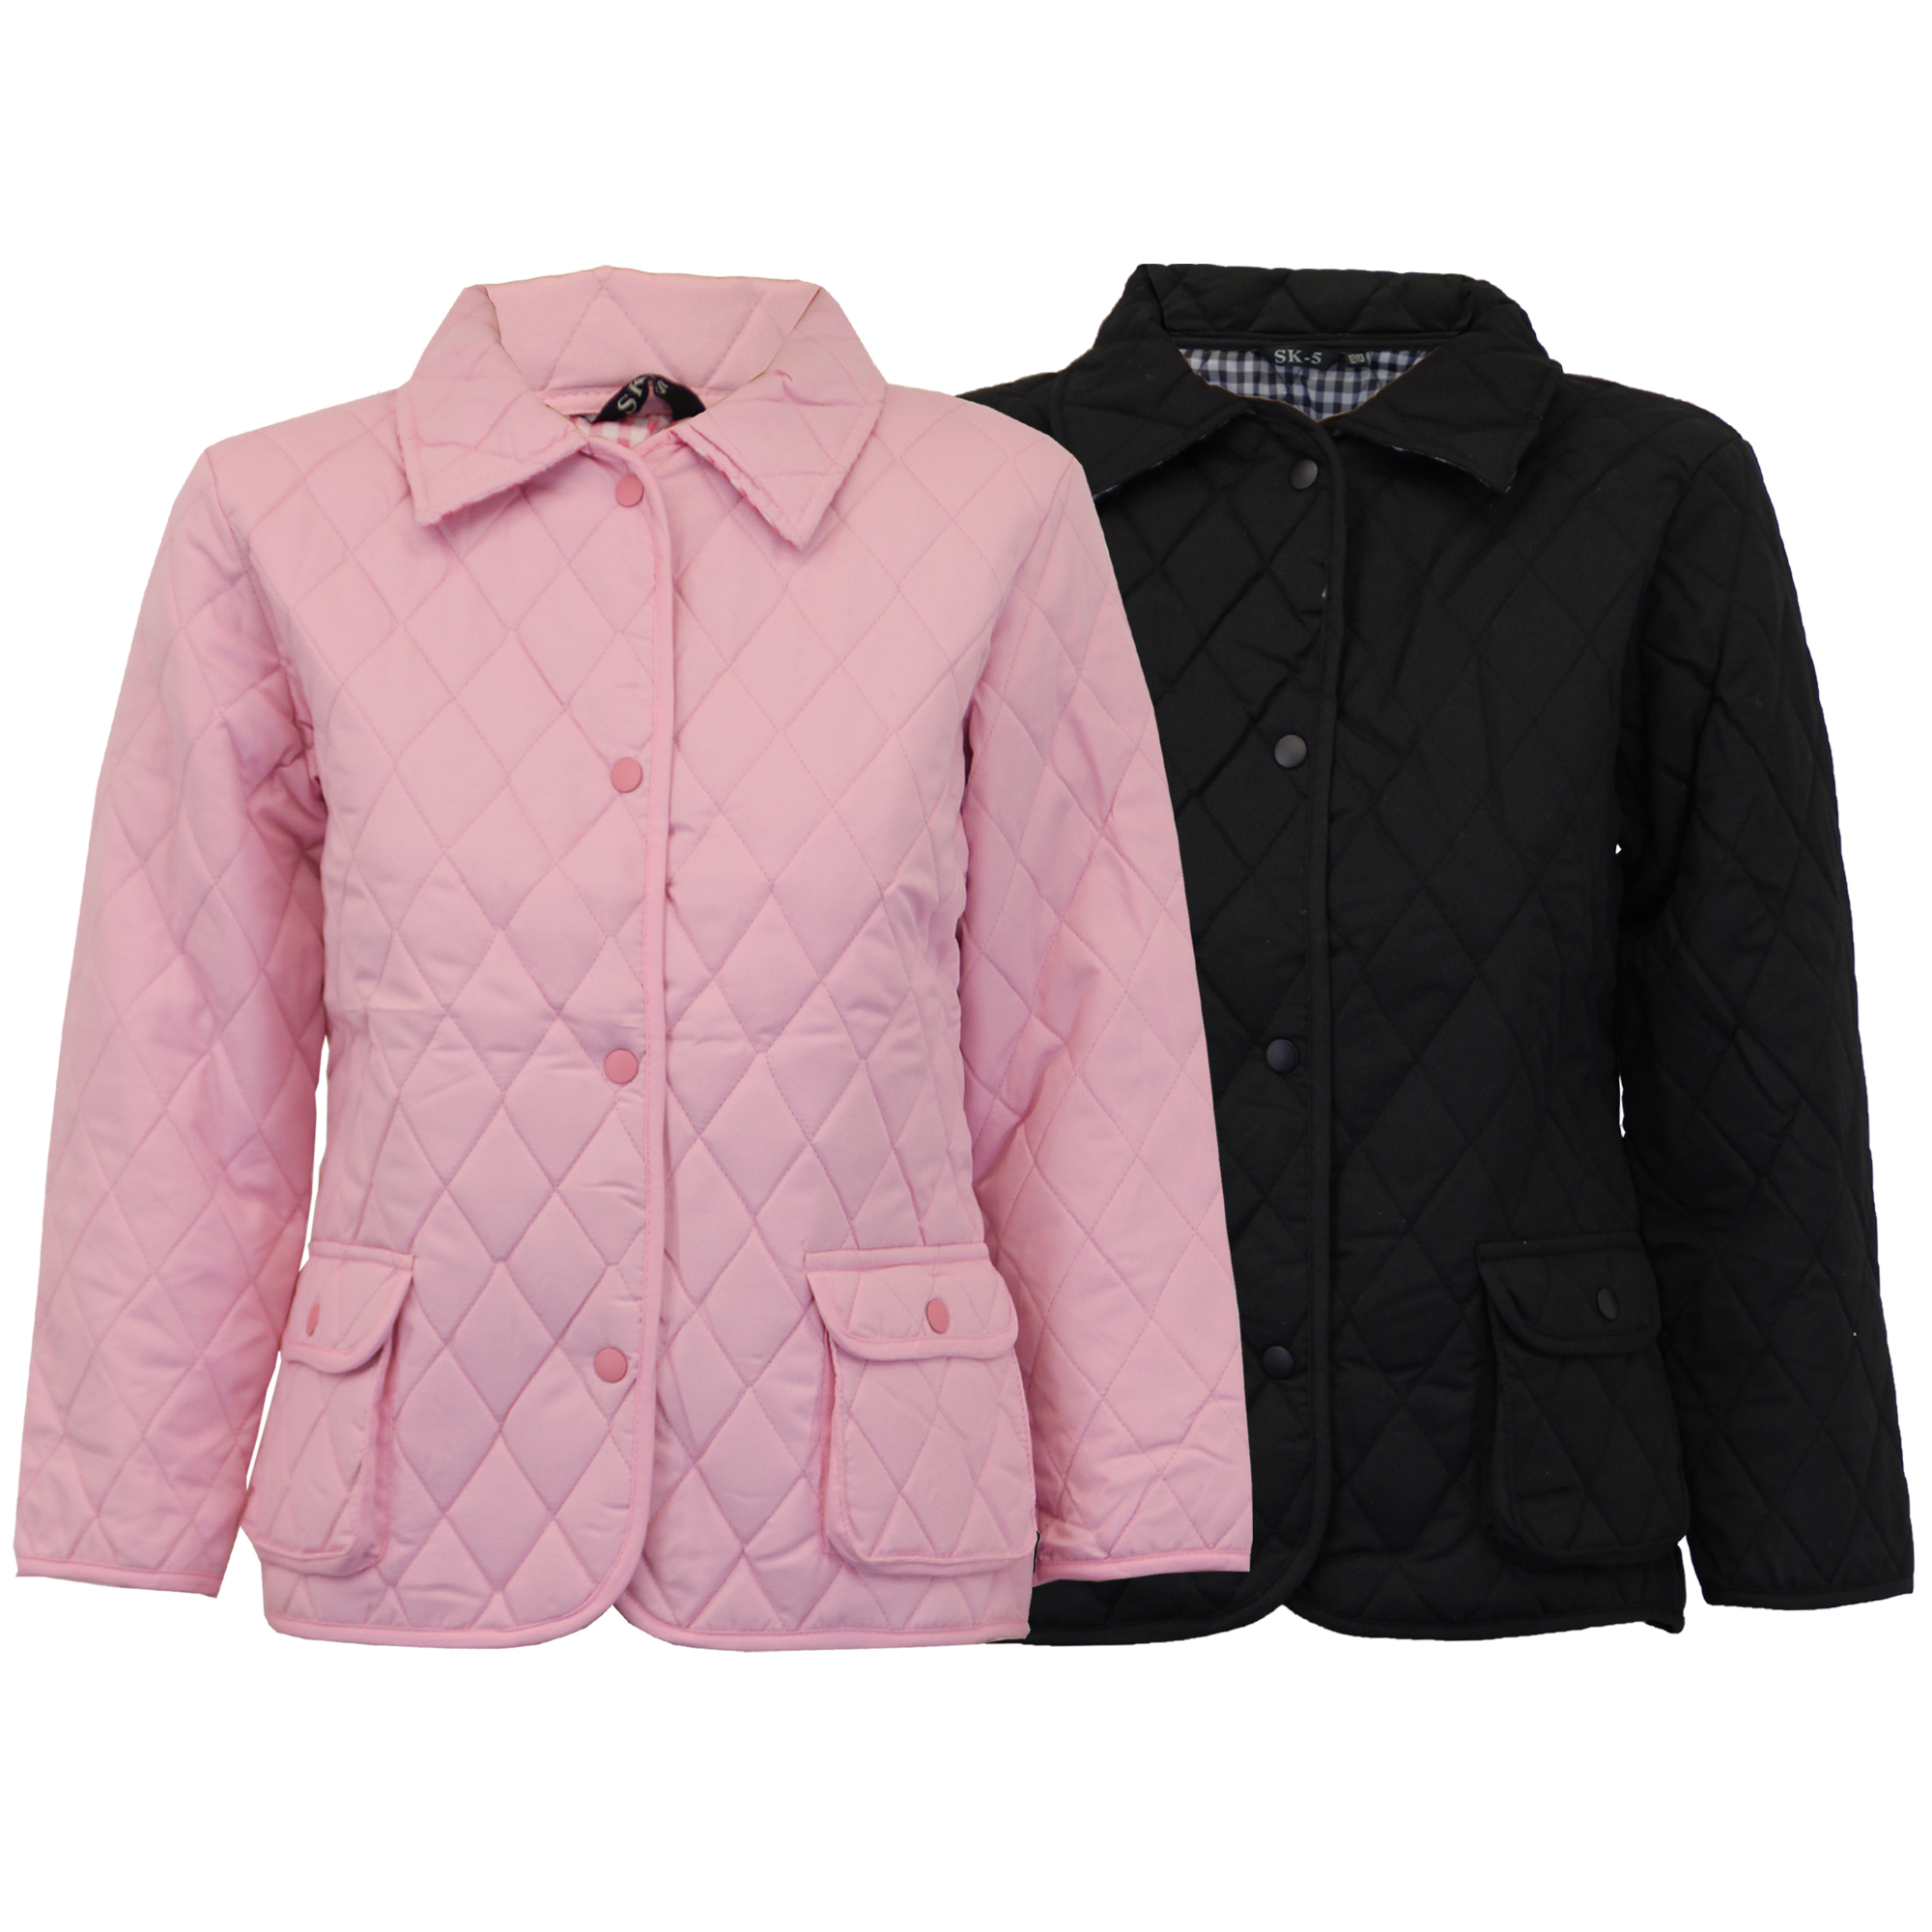 1fd9652b2 Girls Diamond Quilted Padded Jacket Kids Coat Checked Tartan Lined ...